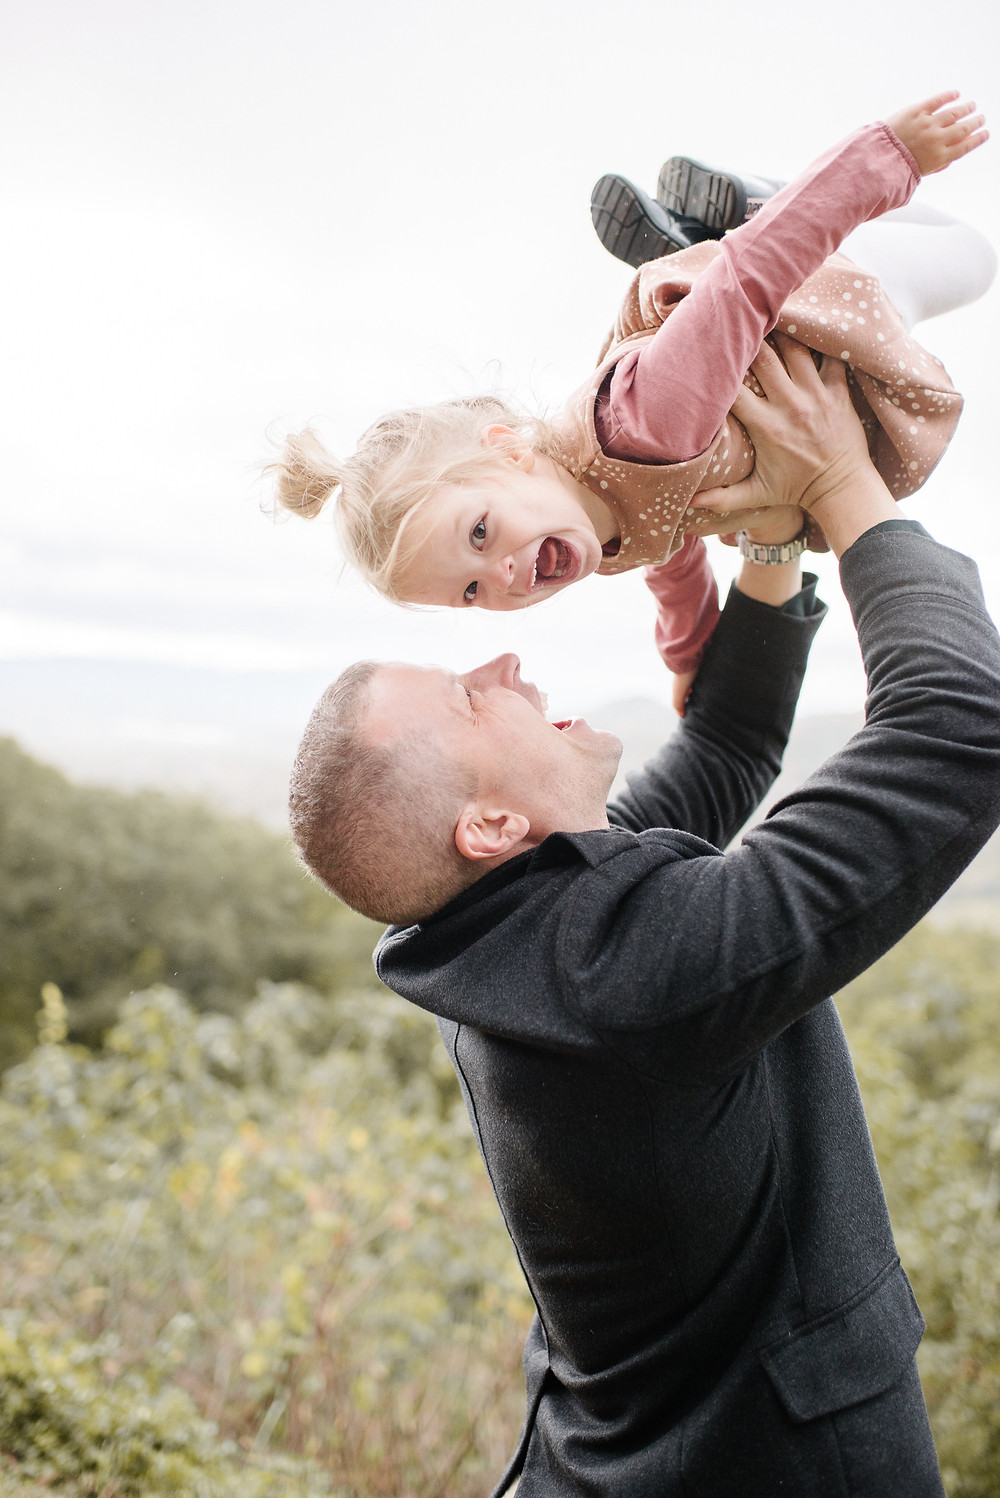 Dad lifts daughter into air.